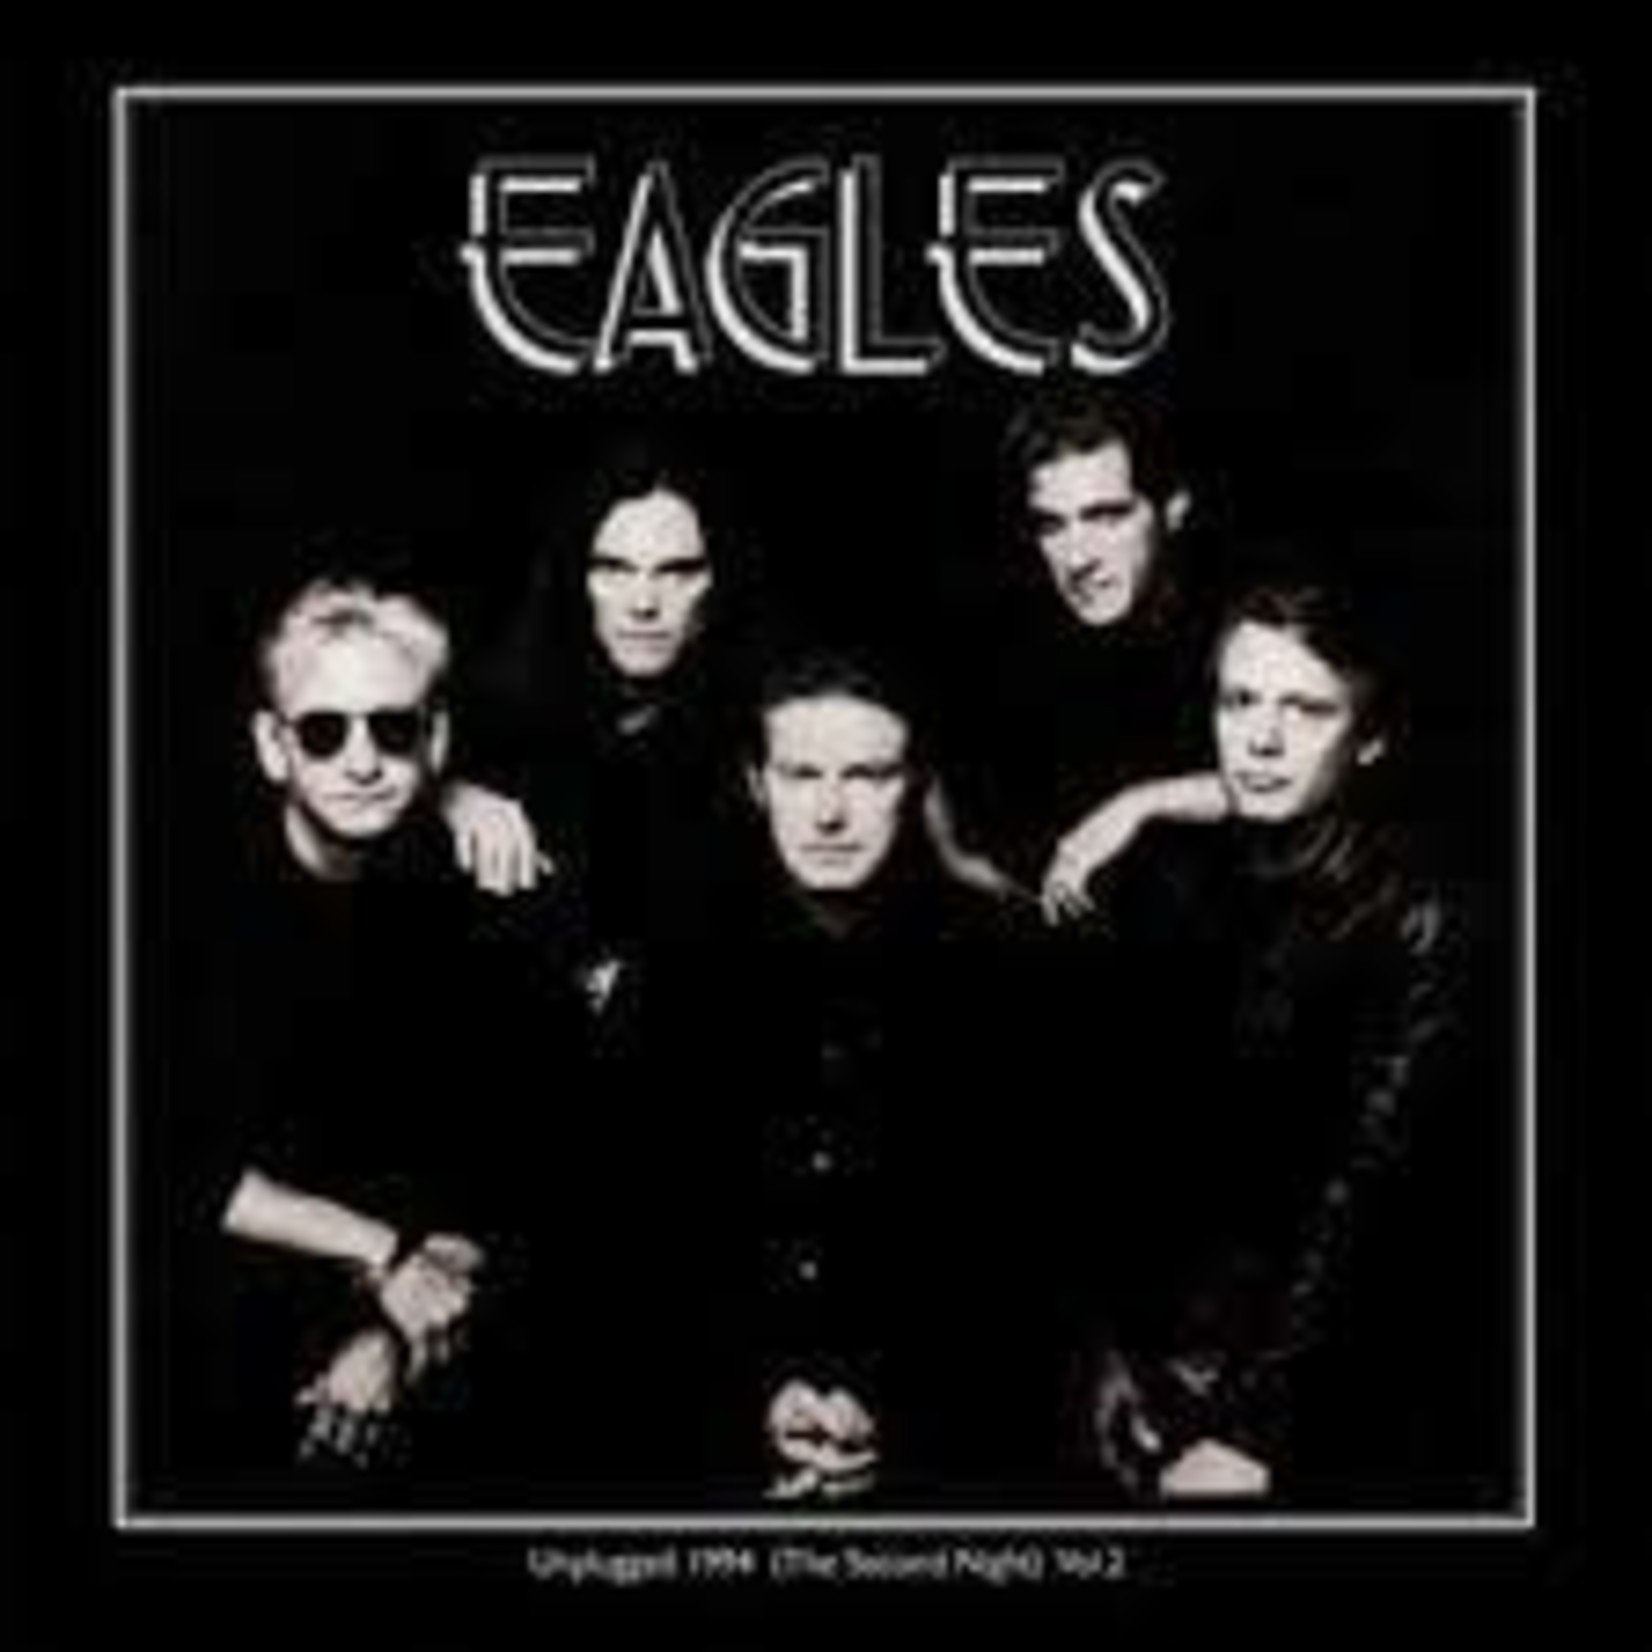 EAGLES - UNPLUGGED 1994 (THE SECOND NIGHT) VOL 2 (VINYL)